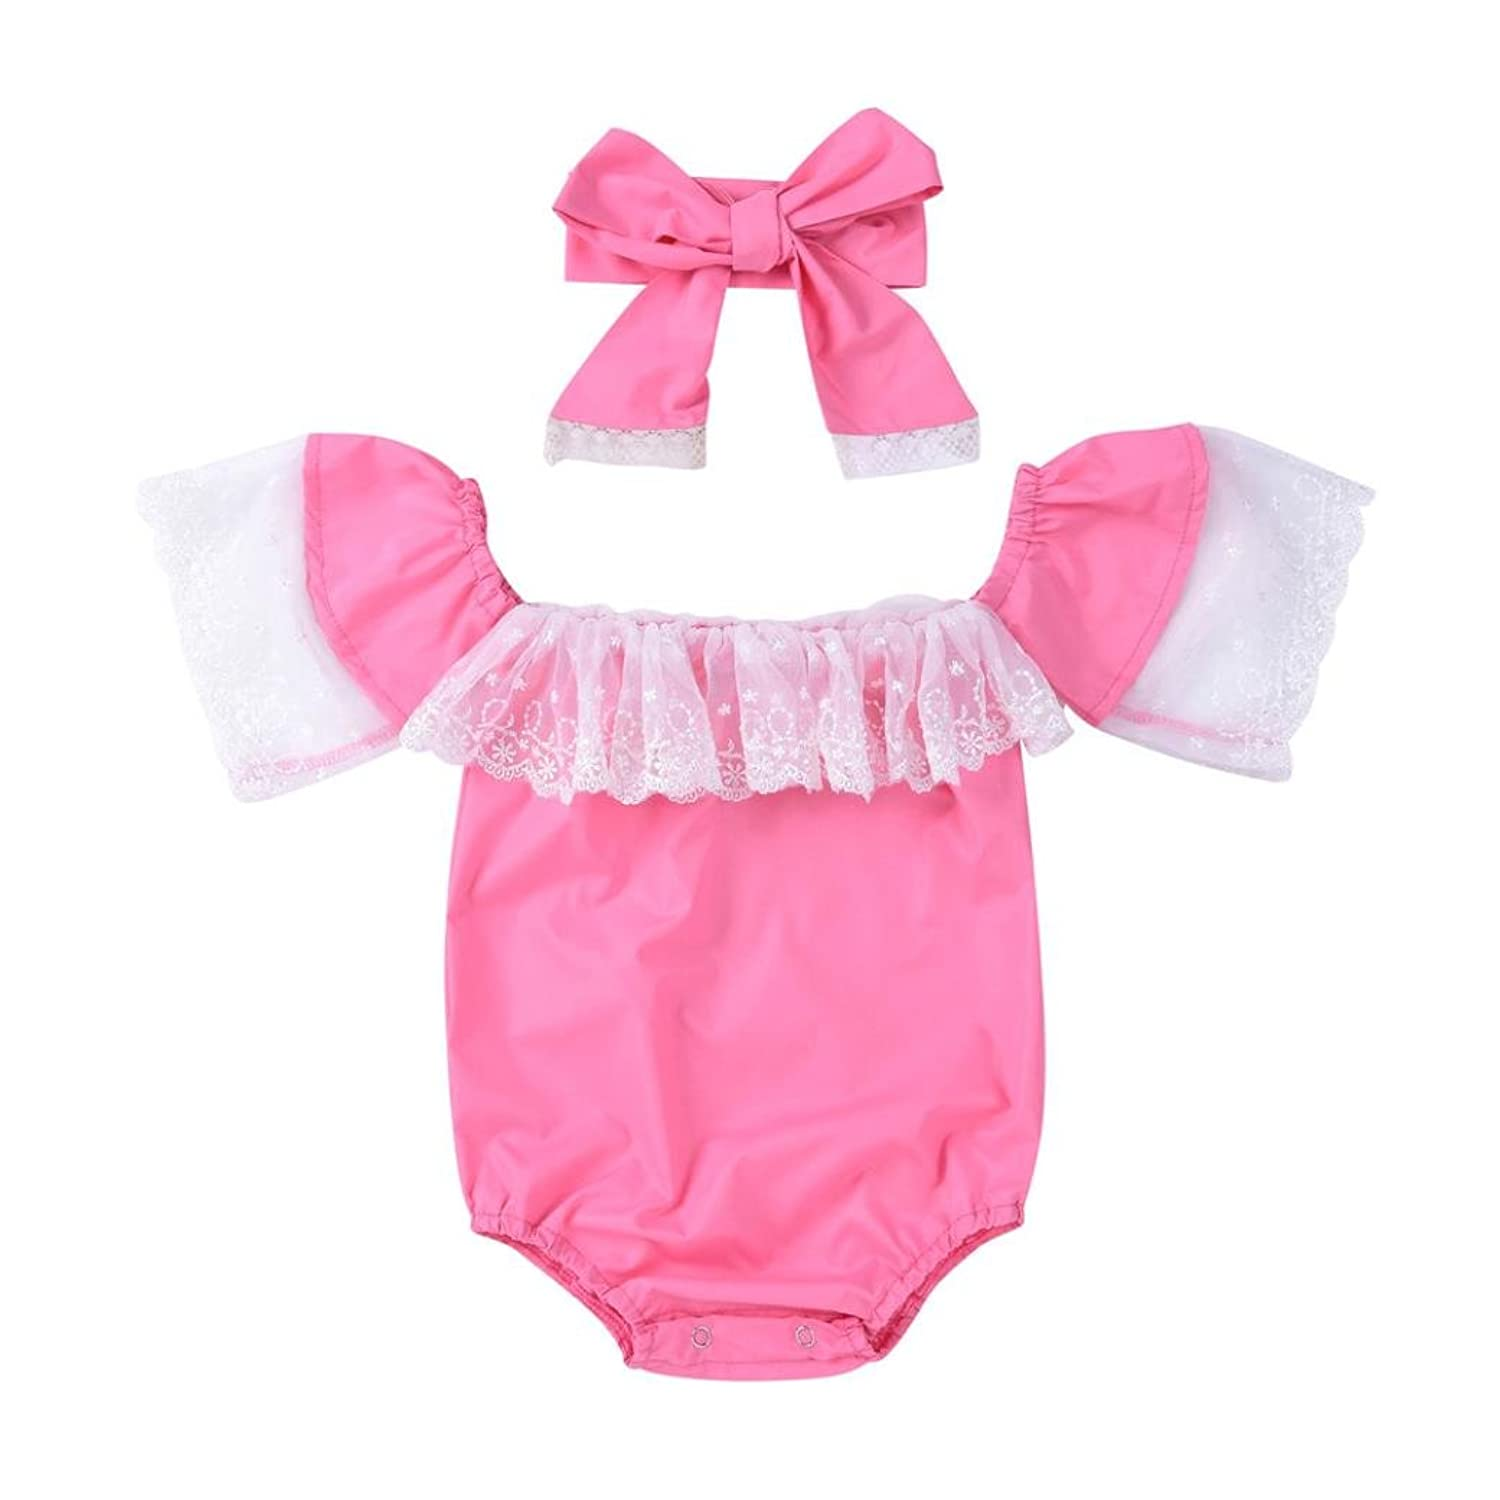 5a1553020 Cyond Rompers Suit for Baby